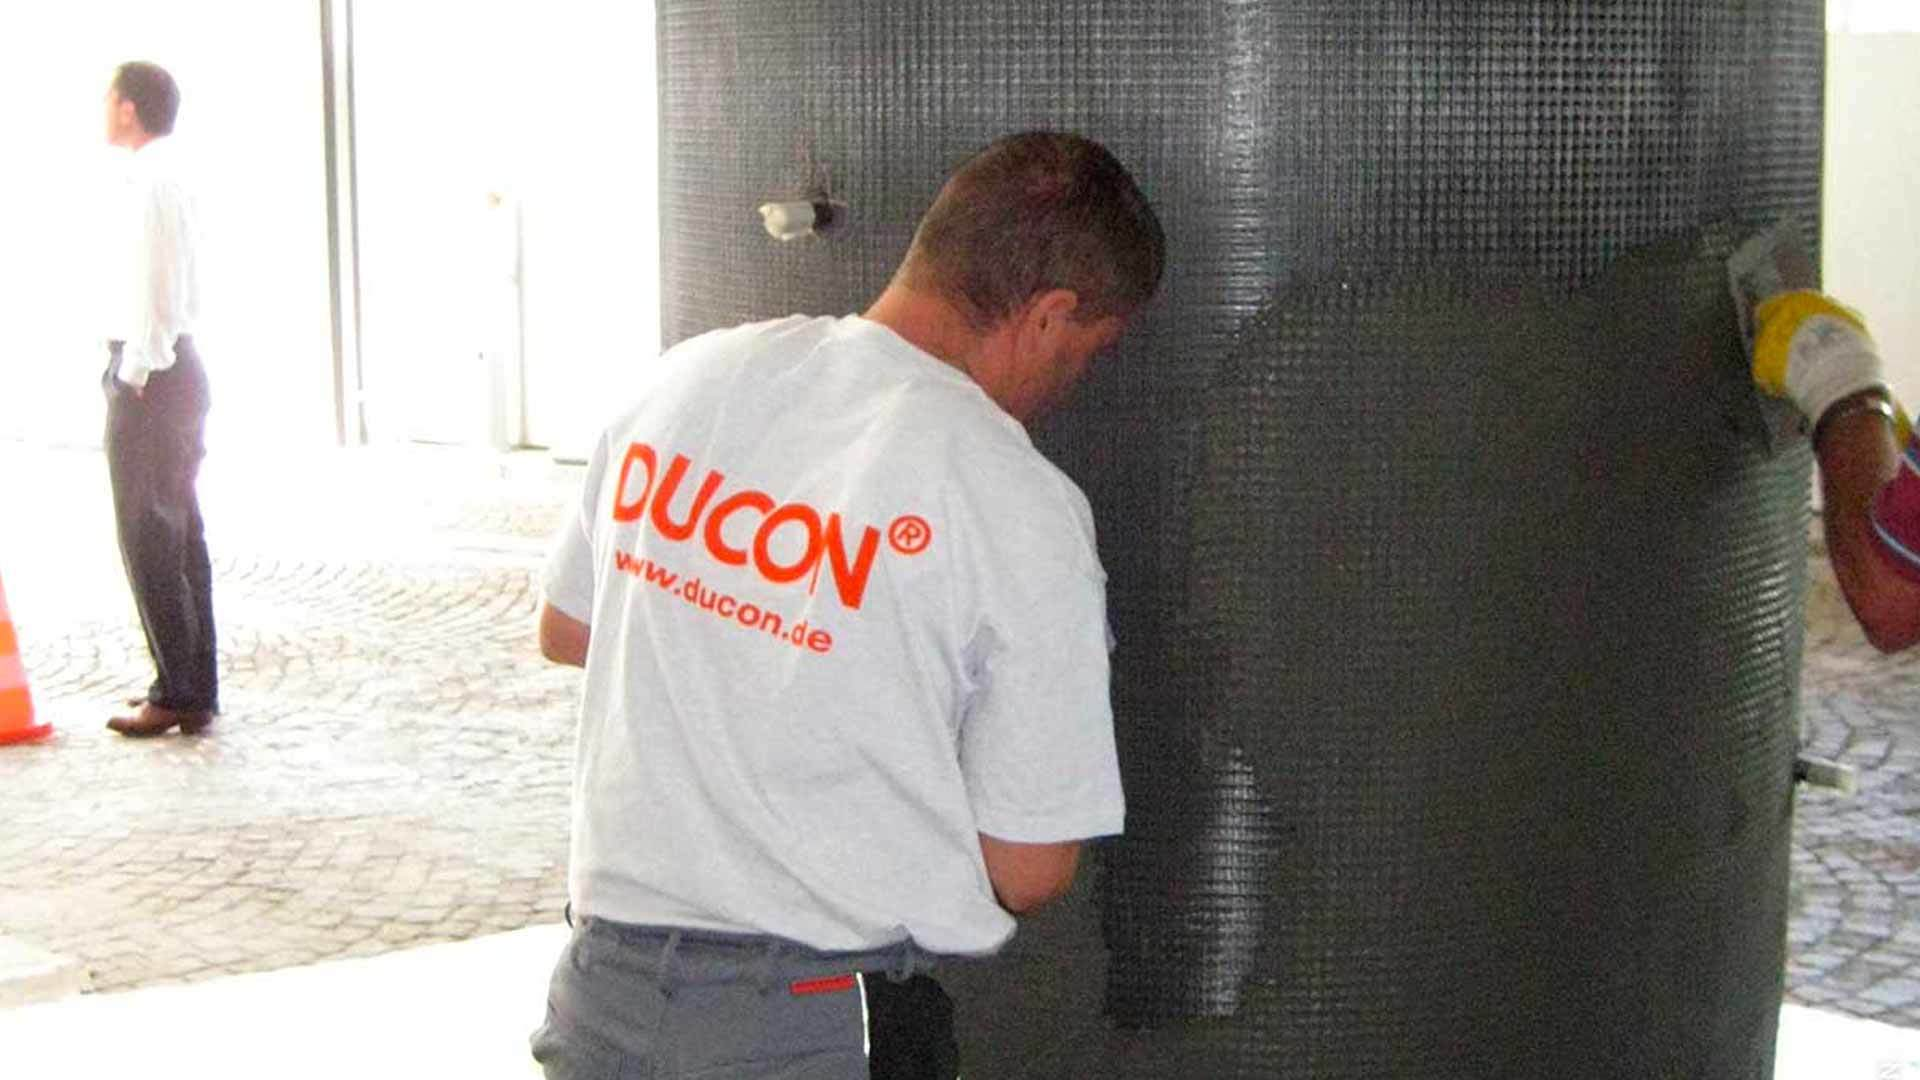 DUCON-team using troweling-infiltration technology